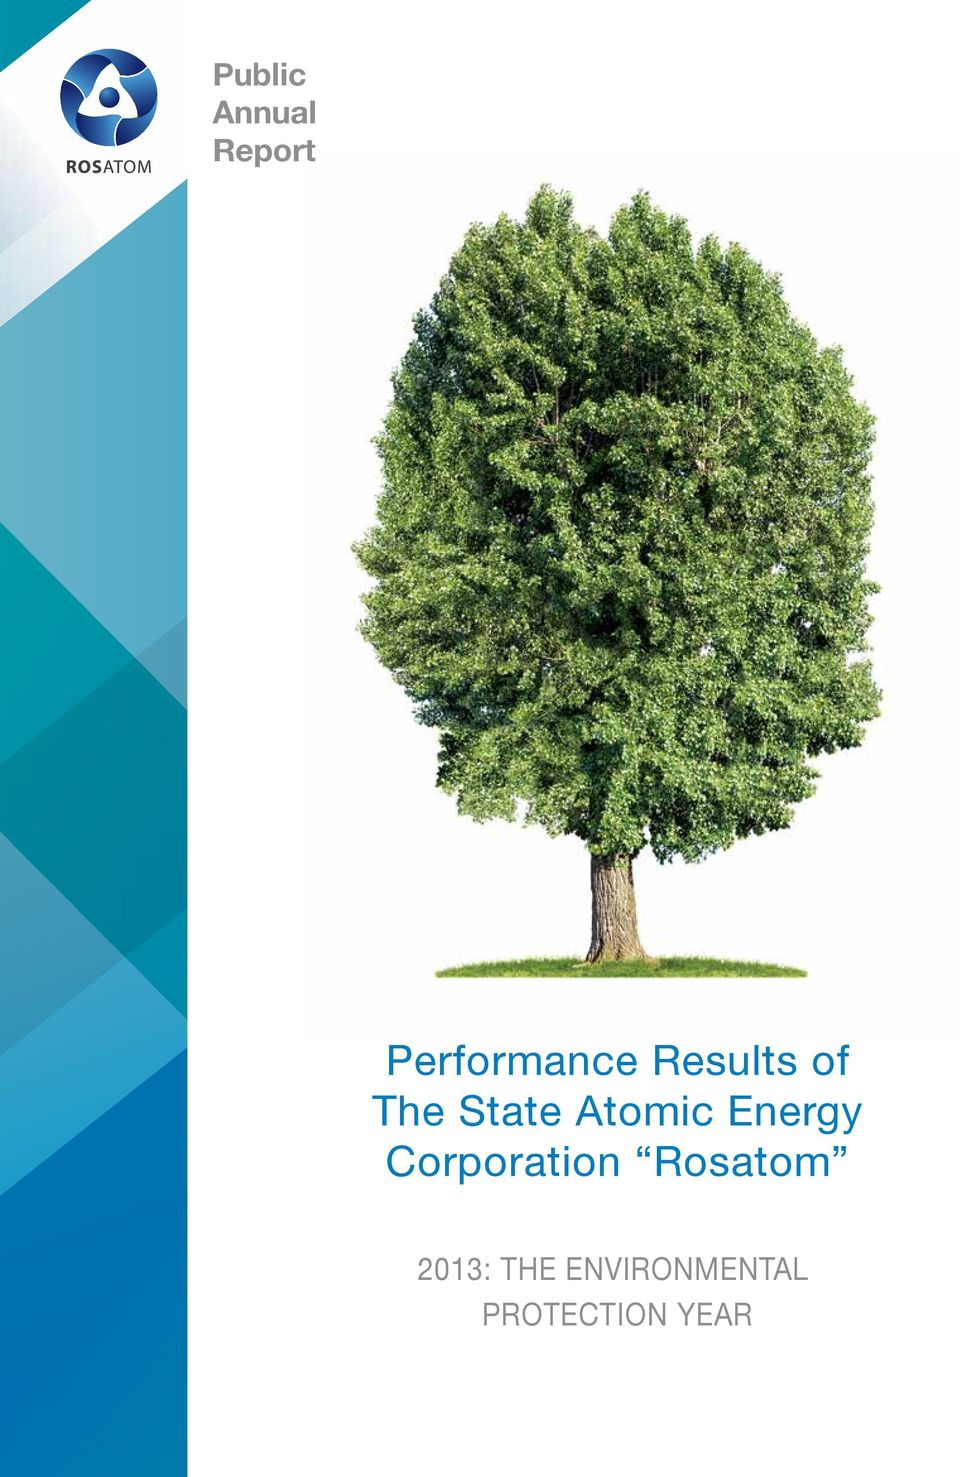 State Atomic Energy